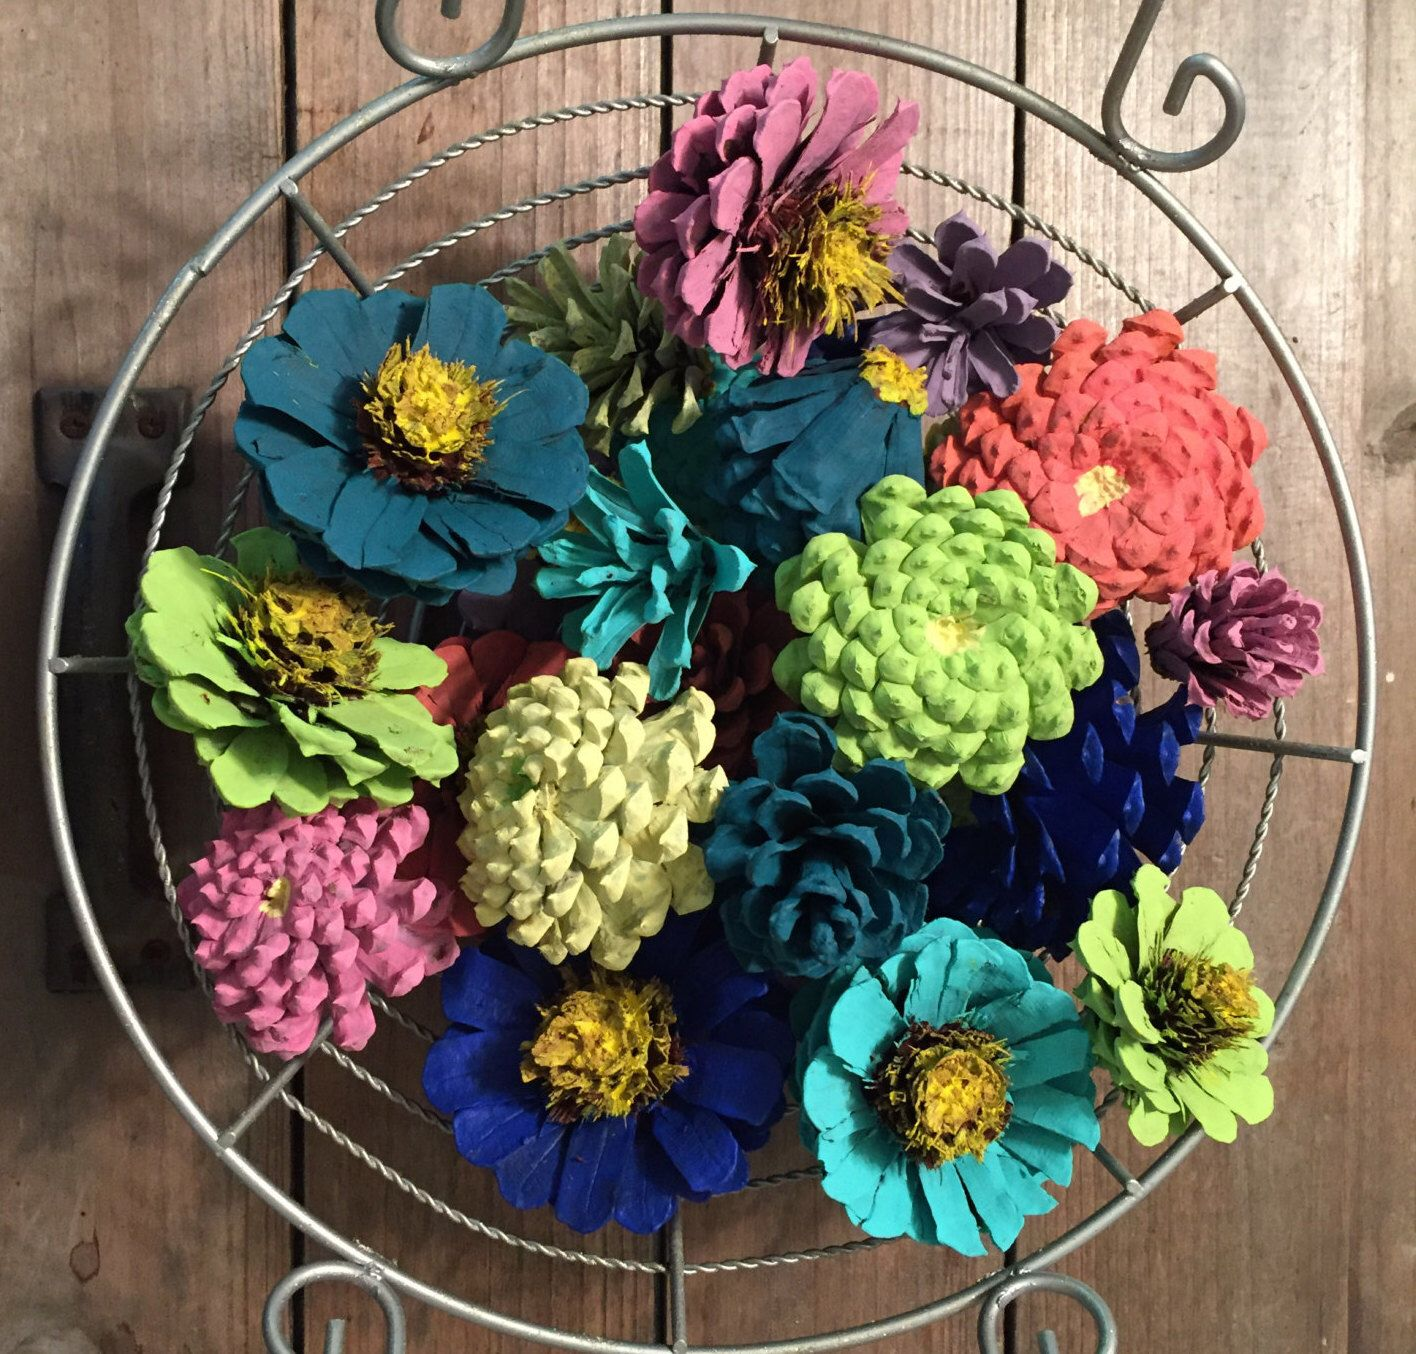 Zinnia Pinecone Flower Bowl Filler Pine Cone Basket Fillers Painted Pinecones Spring Summer Bright Colorful Fl Painted Pinecones Pine Cones Pine Cone Crafts